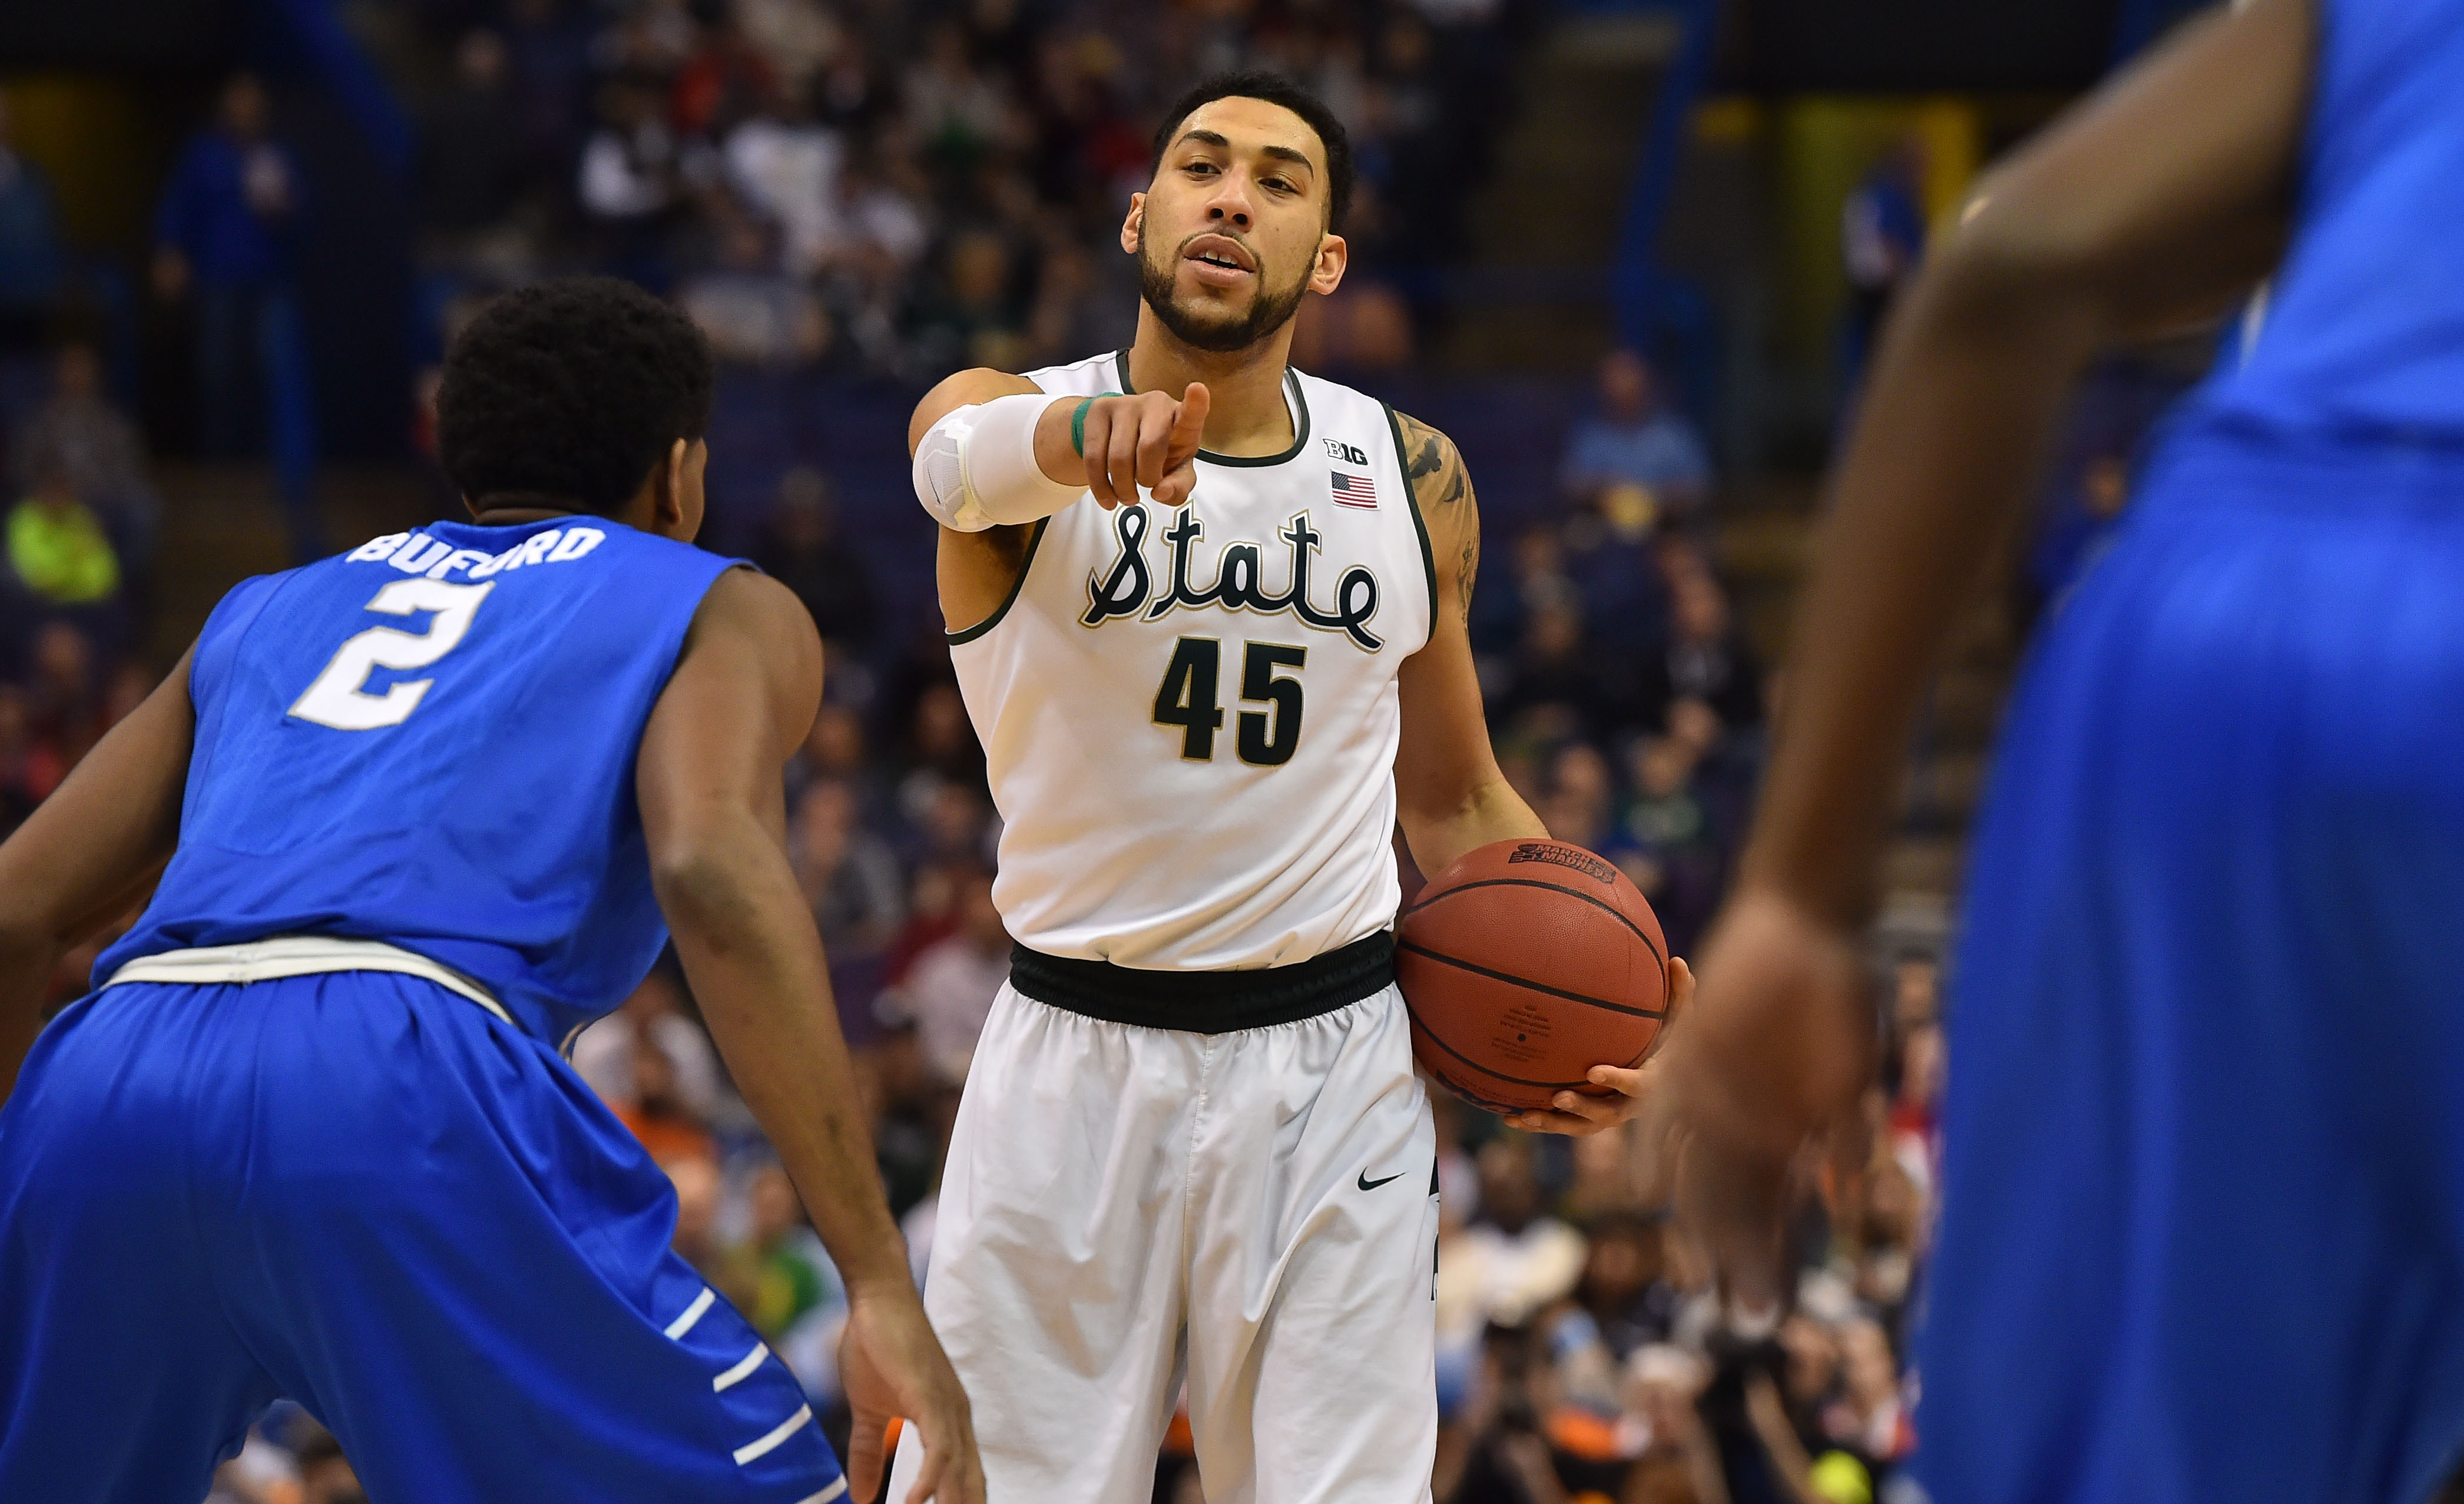 Denzel valentine was an unquestioned leader while at Michigan State